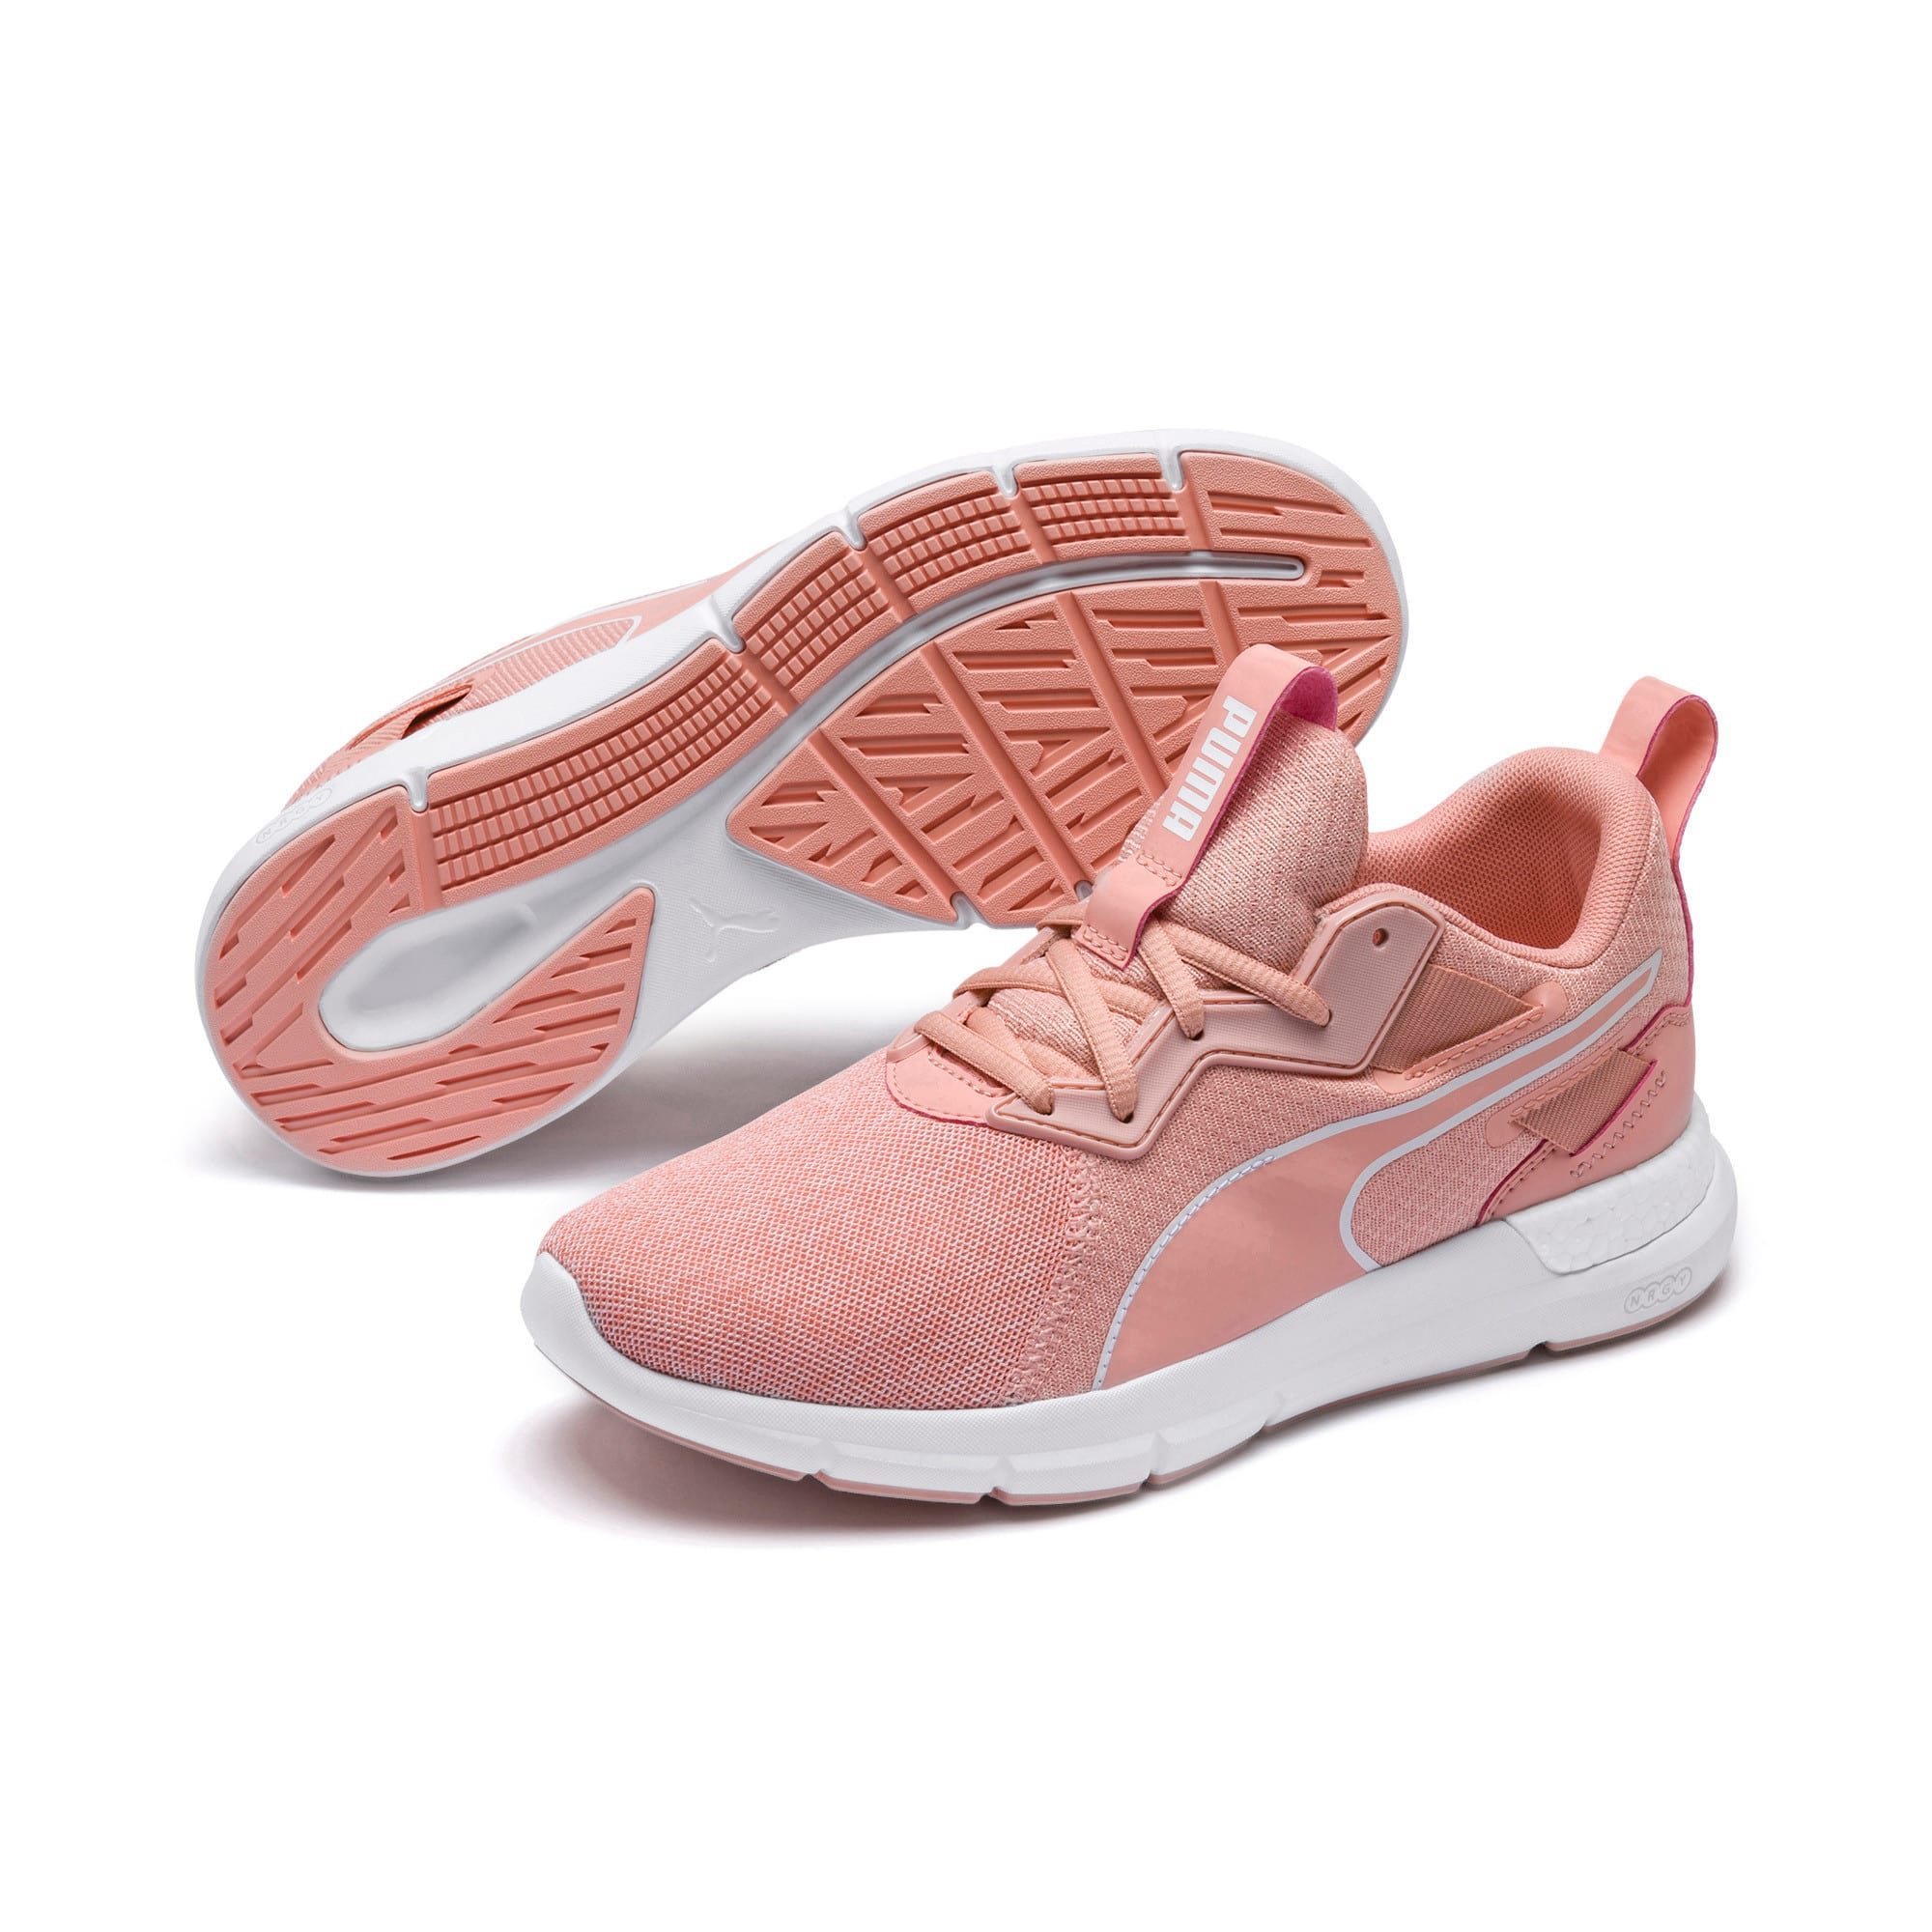 Thumbnail 6 of NRGY Dynamo Futuro Wns Puma Black-Puma W, Peach Bud-Puma White, medium-IND